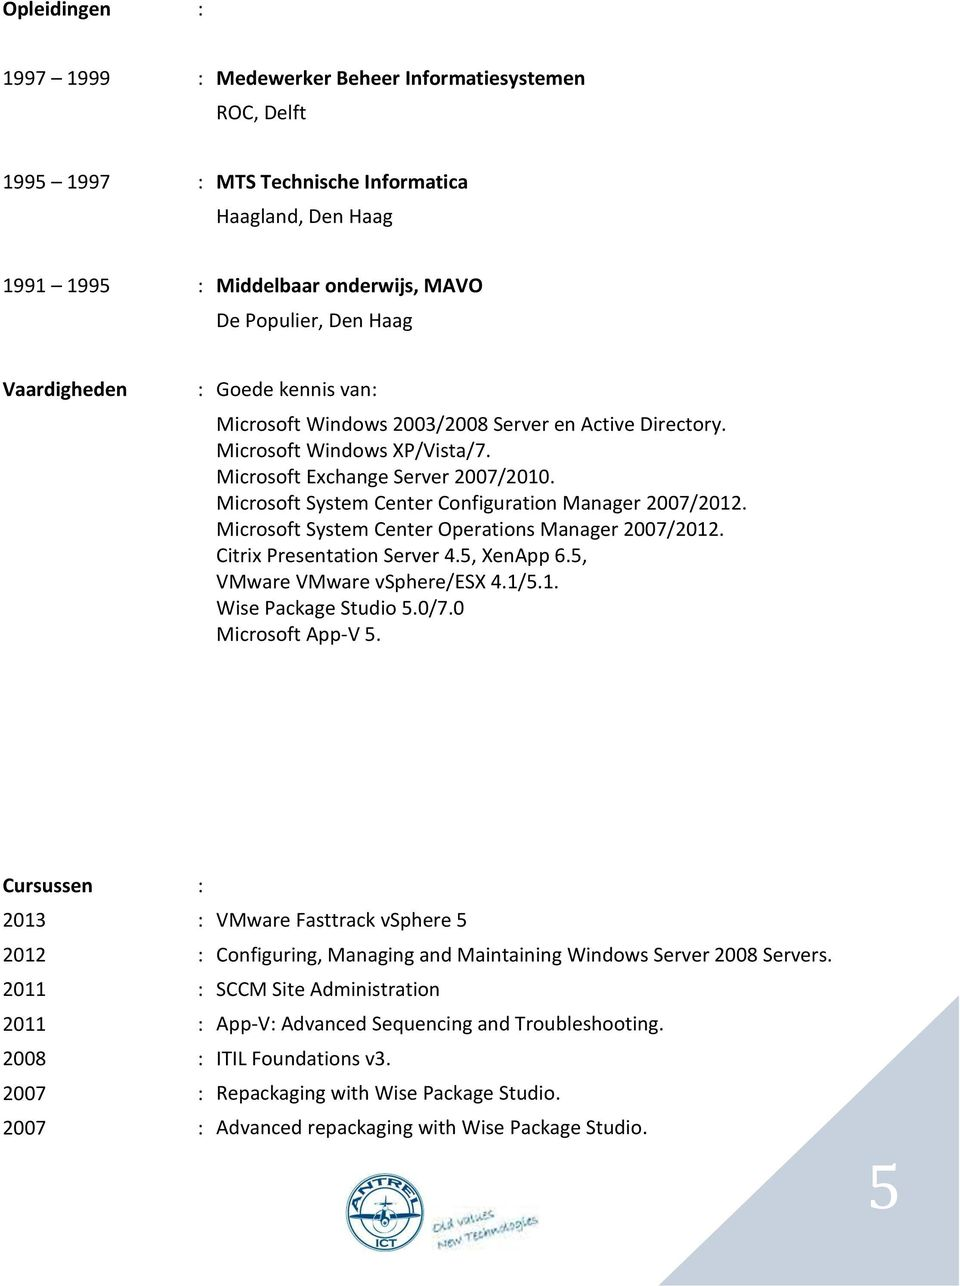 Microsoft System Center Configuration Manager 2007/2012. Microsoft System Center Operations Manager 2007/2012. Citrix Presentation Server 4.5, XenApp 6.5, VMware VMware vsphere/esx 4.1/5.1. Wise Package Studio 5.